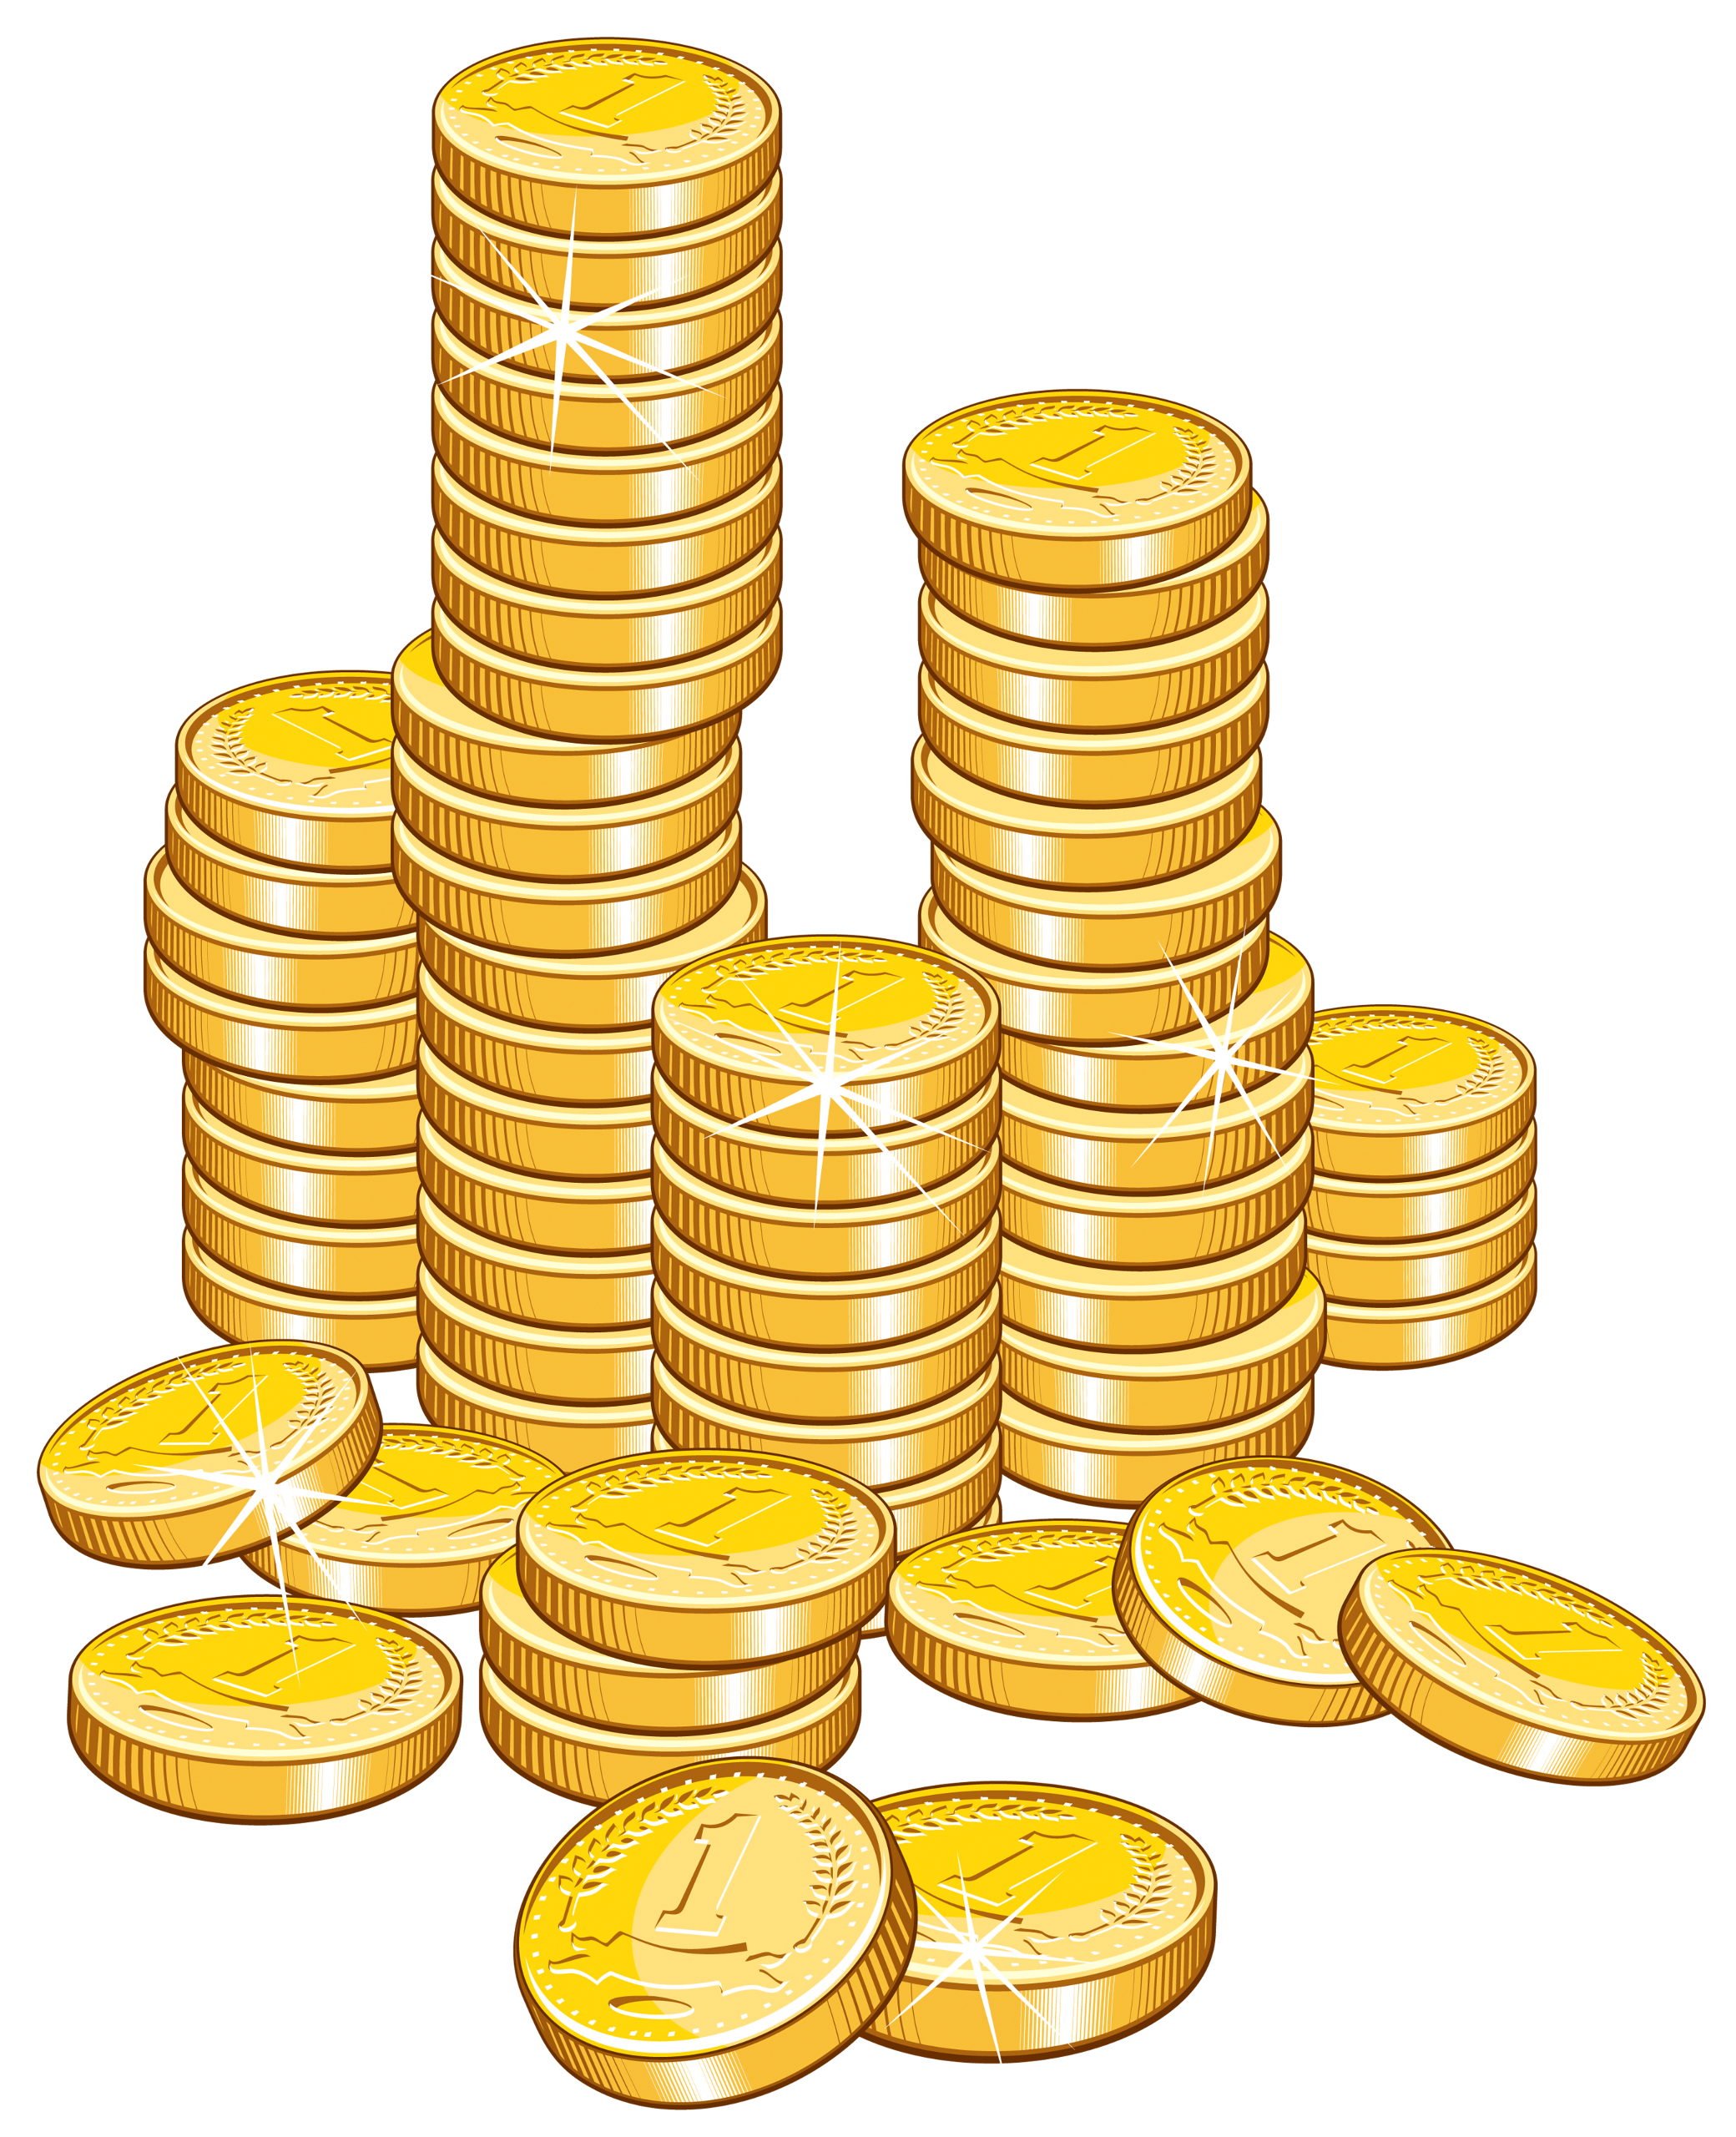 Coins stack clipart picture